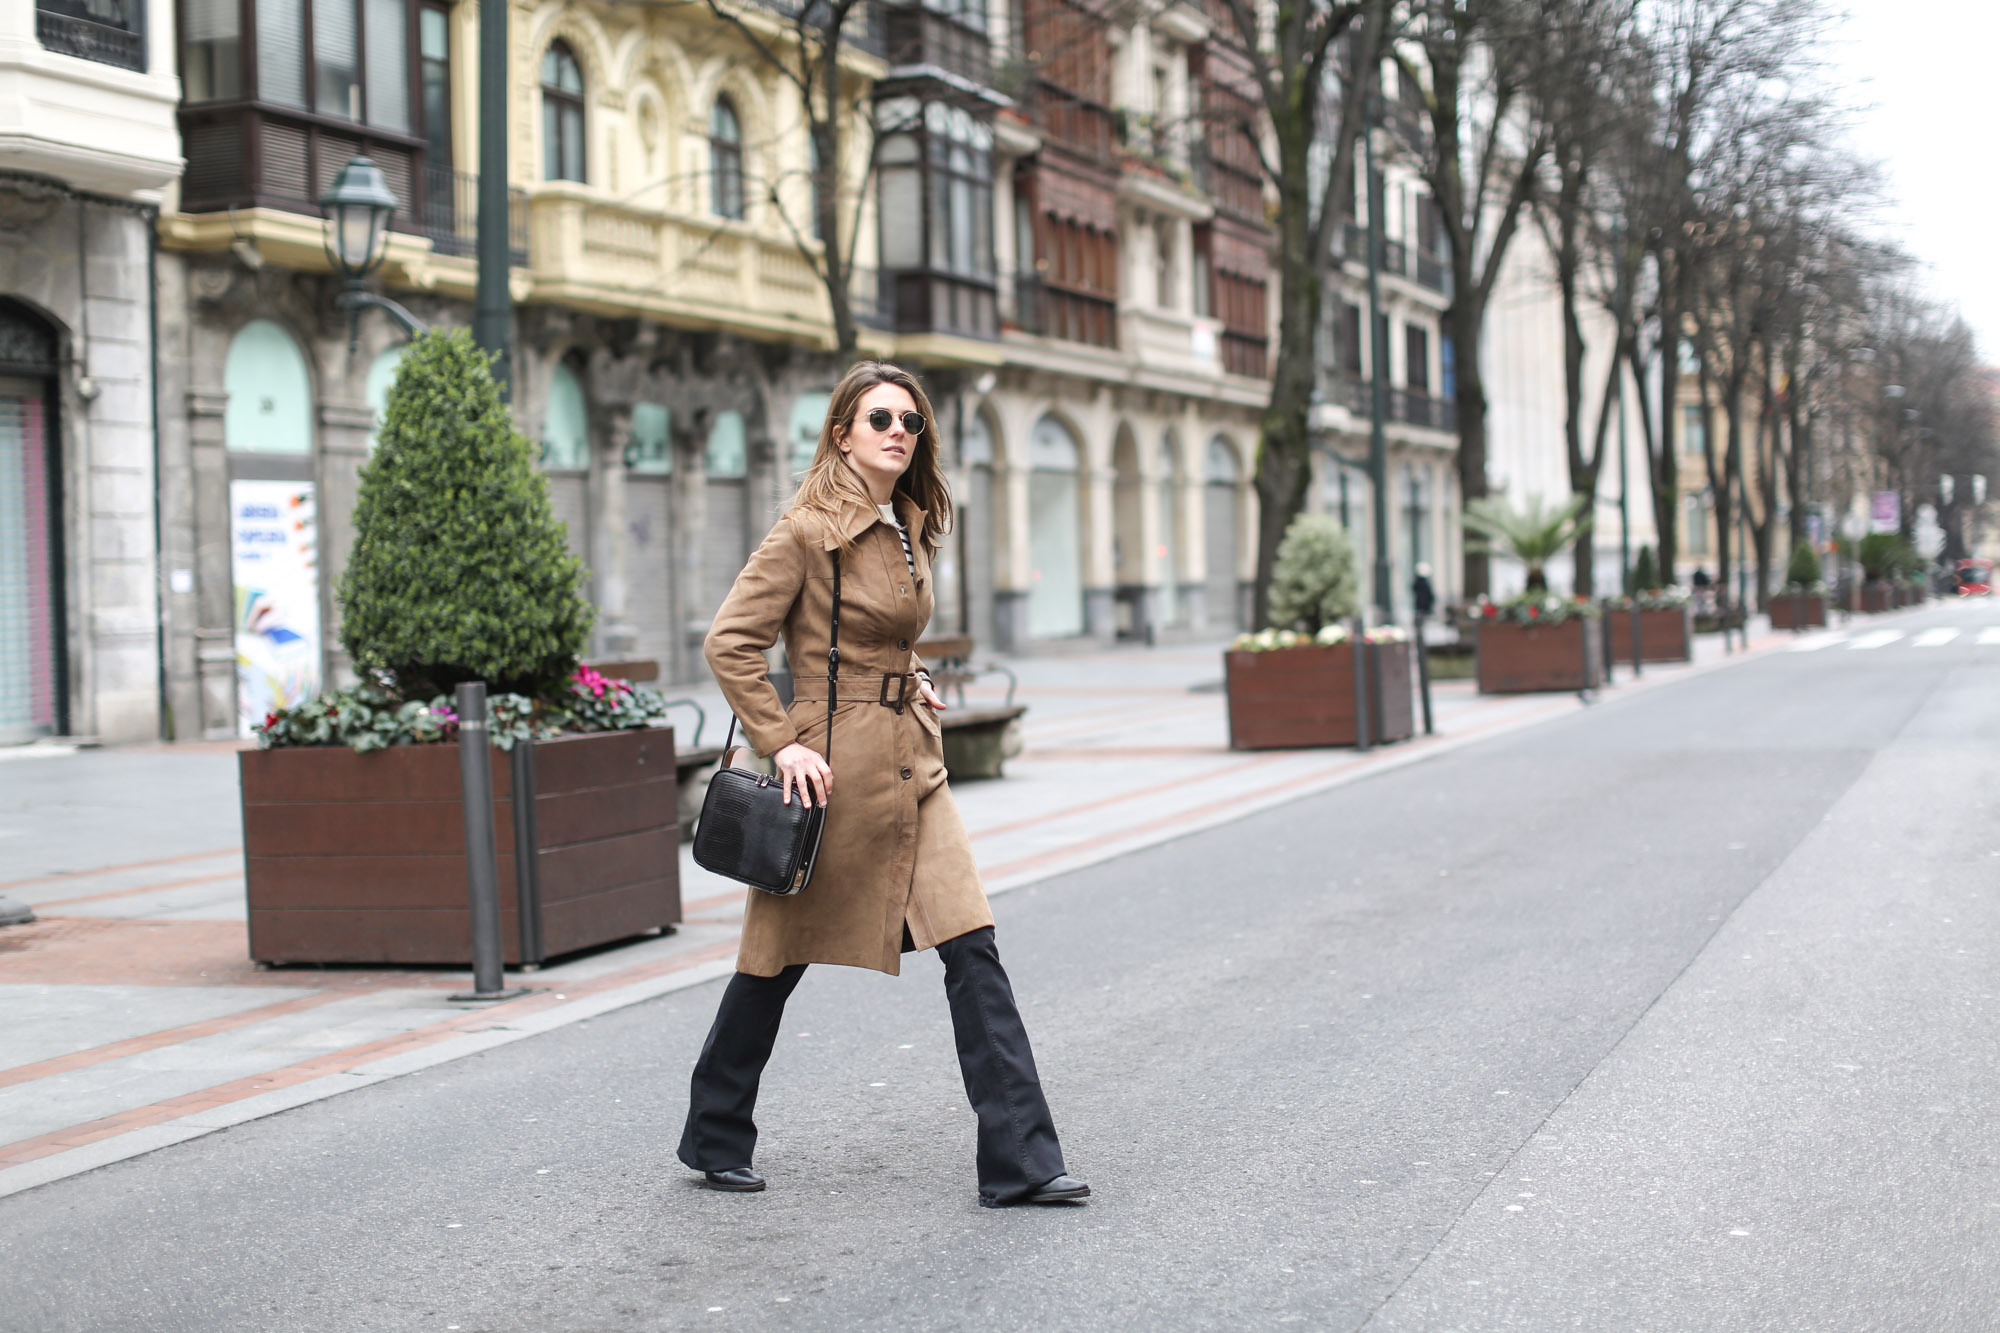 Clochet-streetstyle-black-flared-jeans-suede-vintage-coat-finery-london-bag